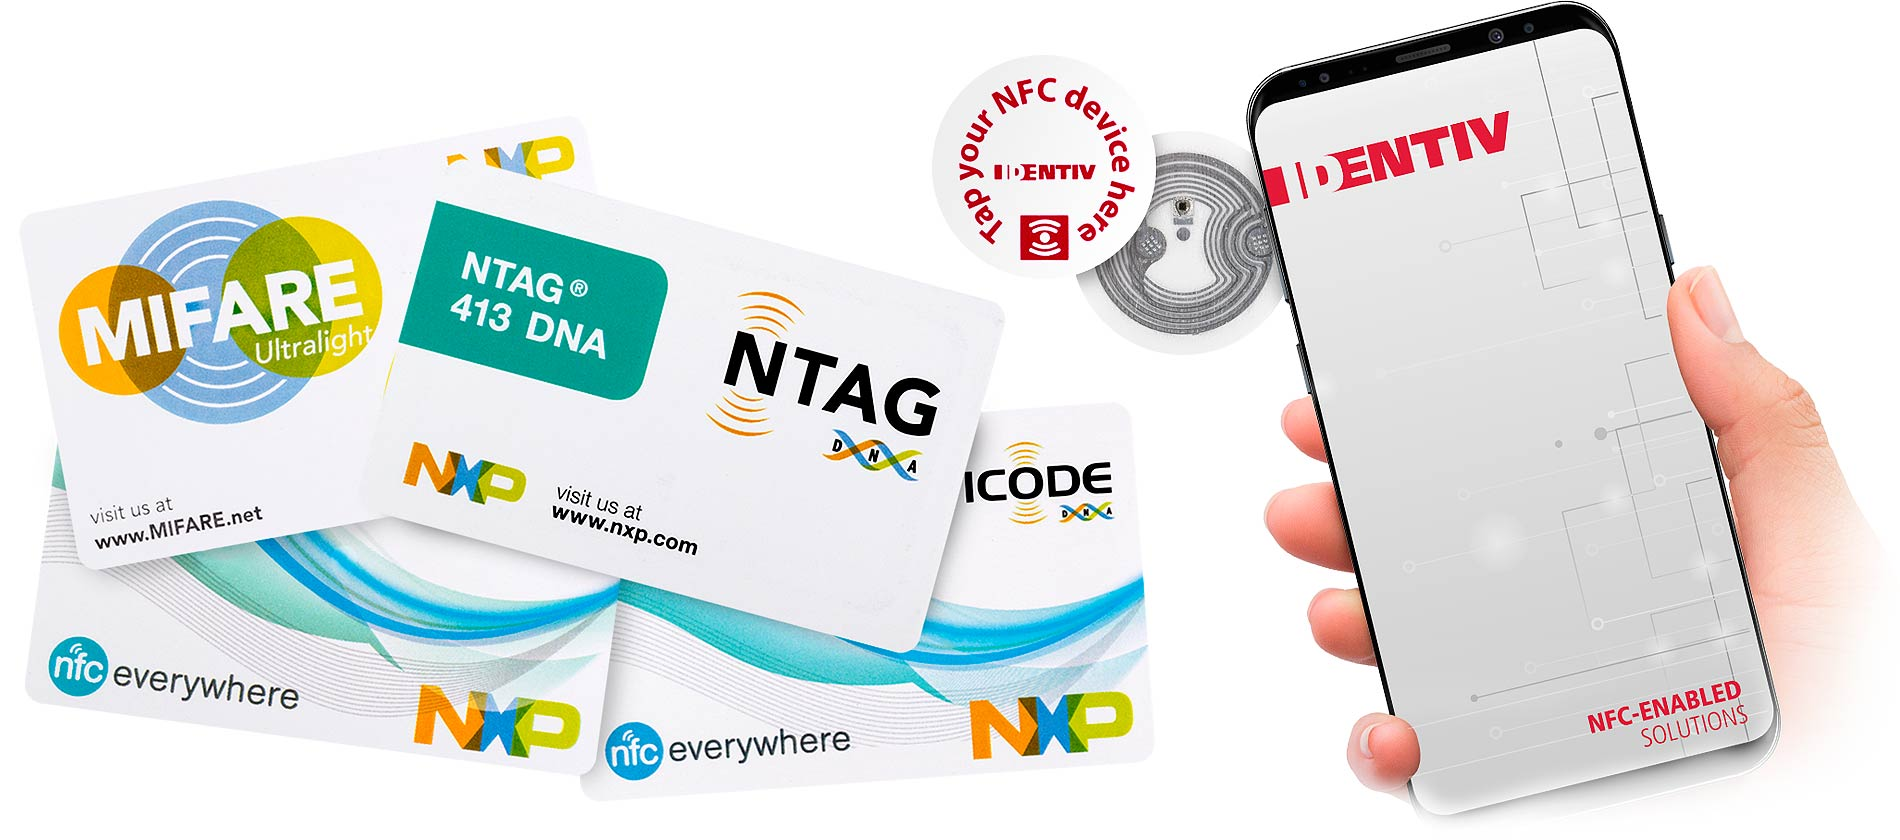 Identiv NFC-Enabled Solutions